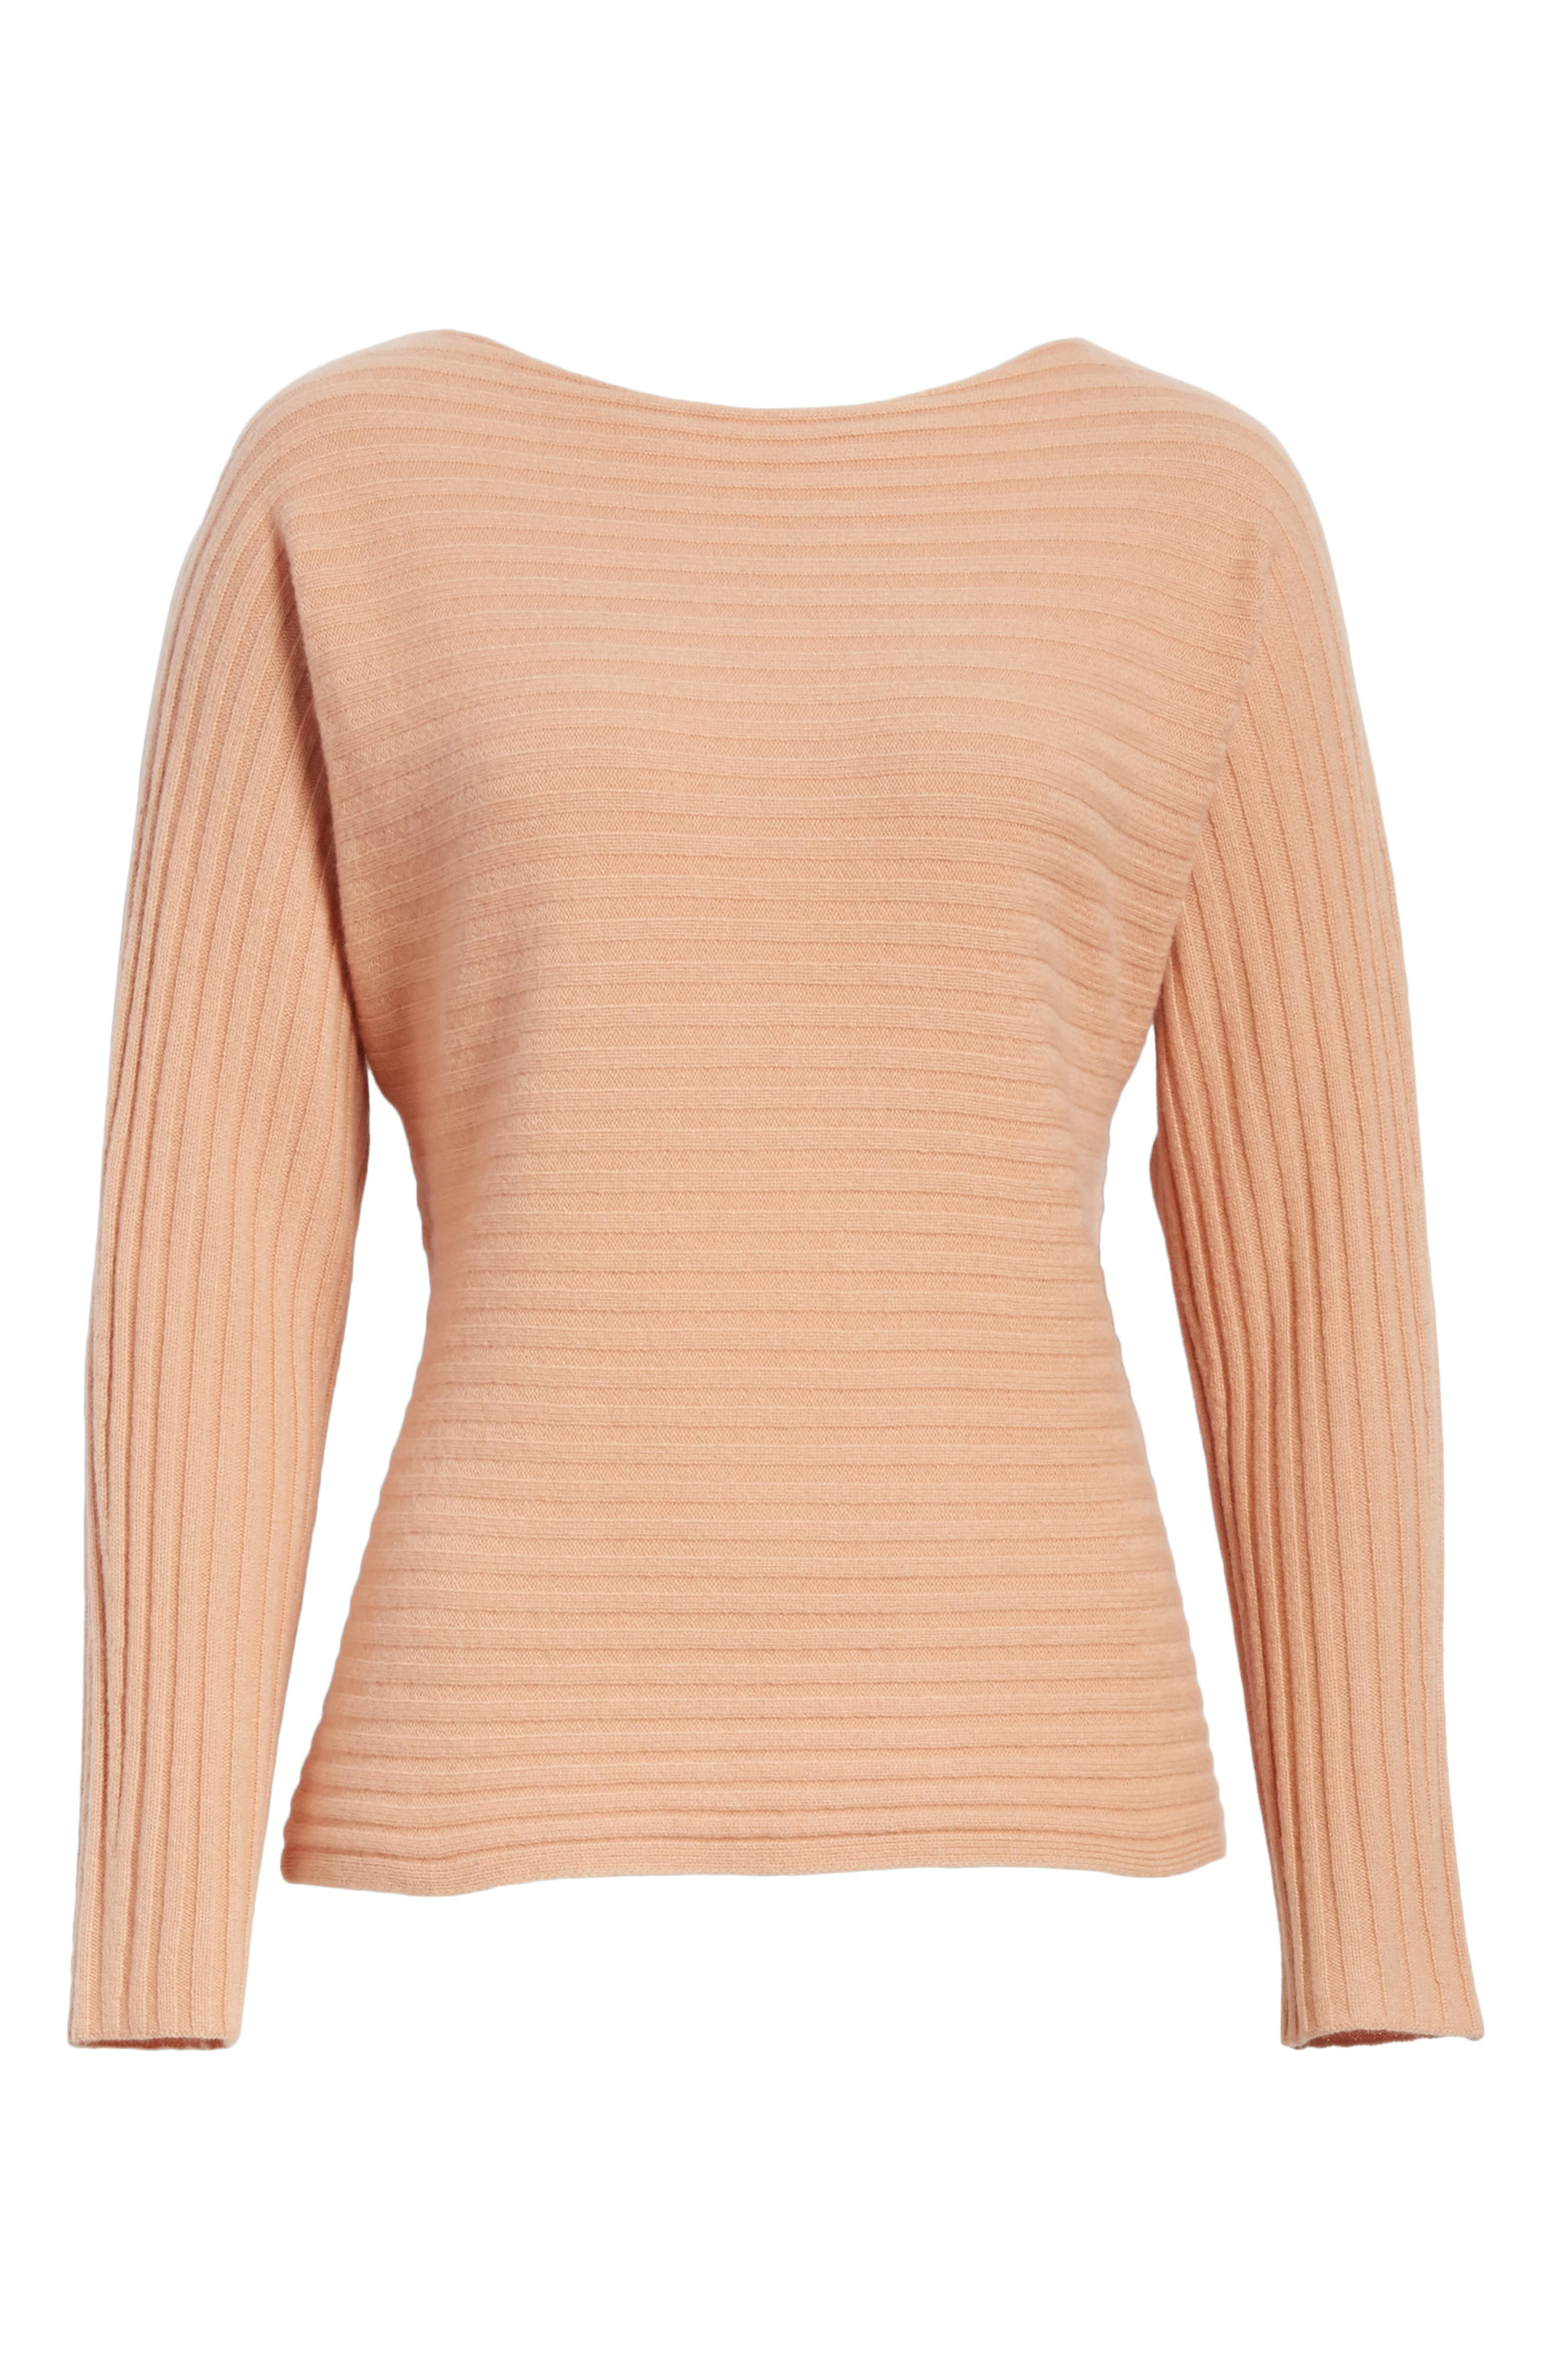 Tie Back Wool & Cashmere Sweater,                             Alternate thumbnail 6, color,                             Blush